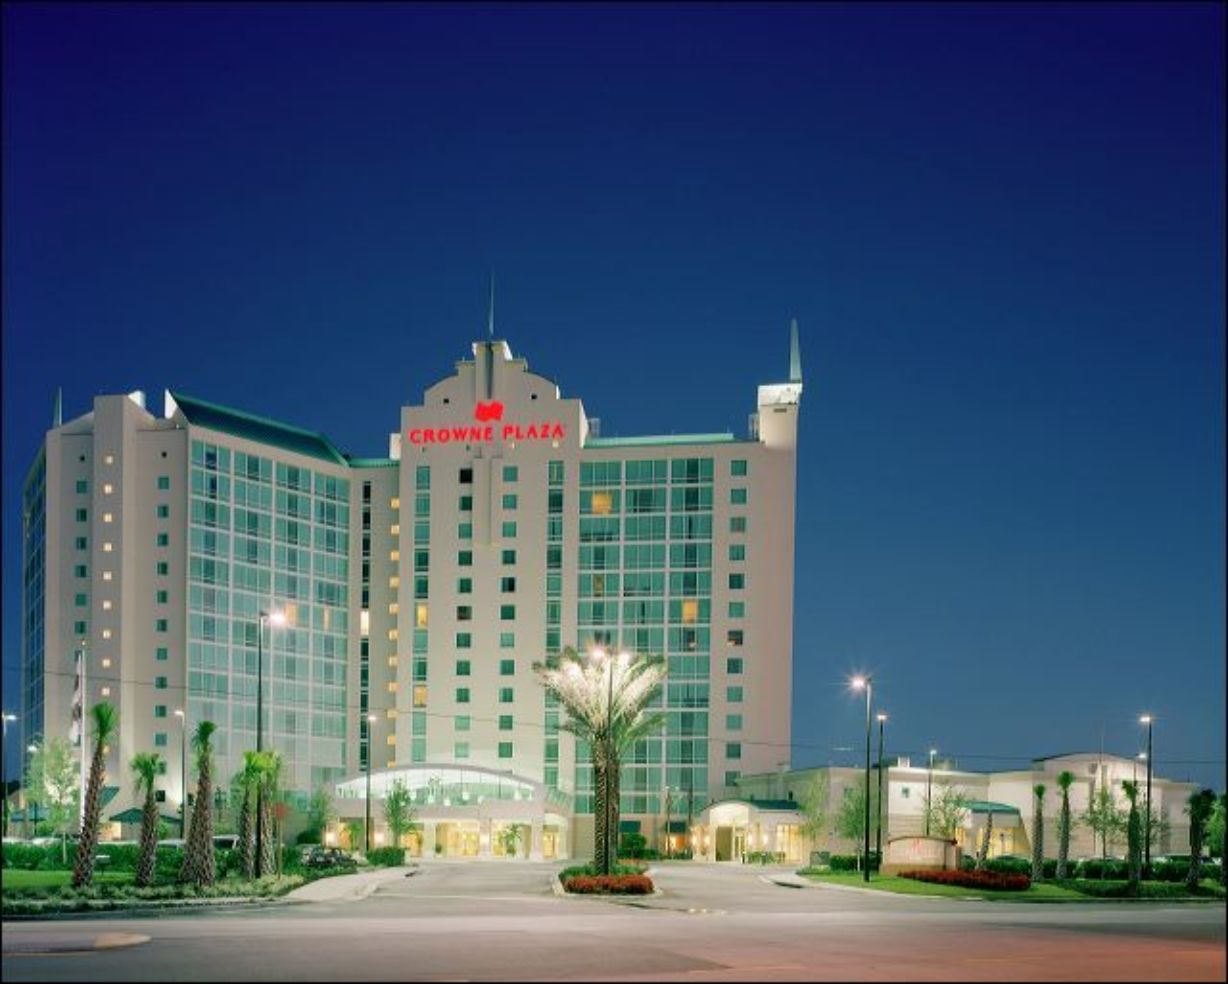 Crowne Plaza in Orlando FL